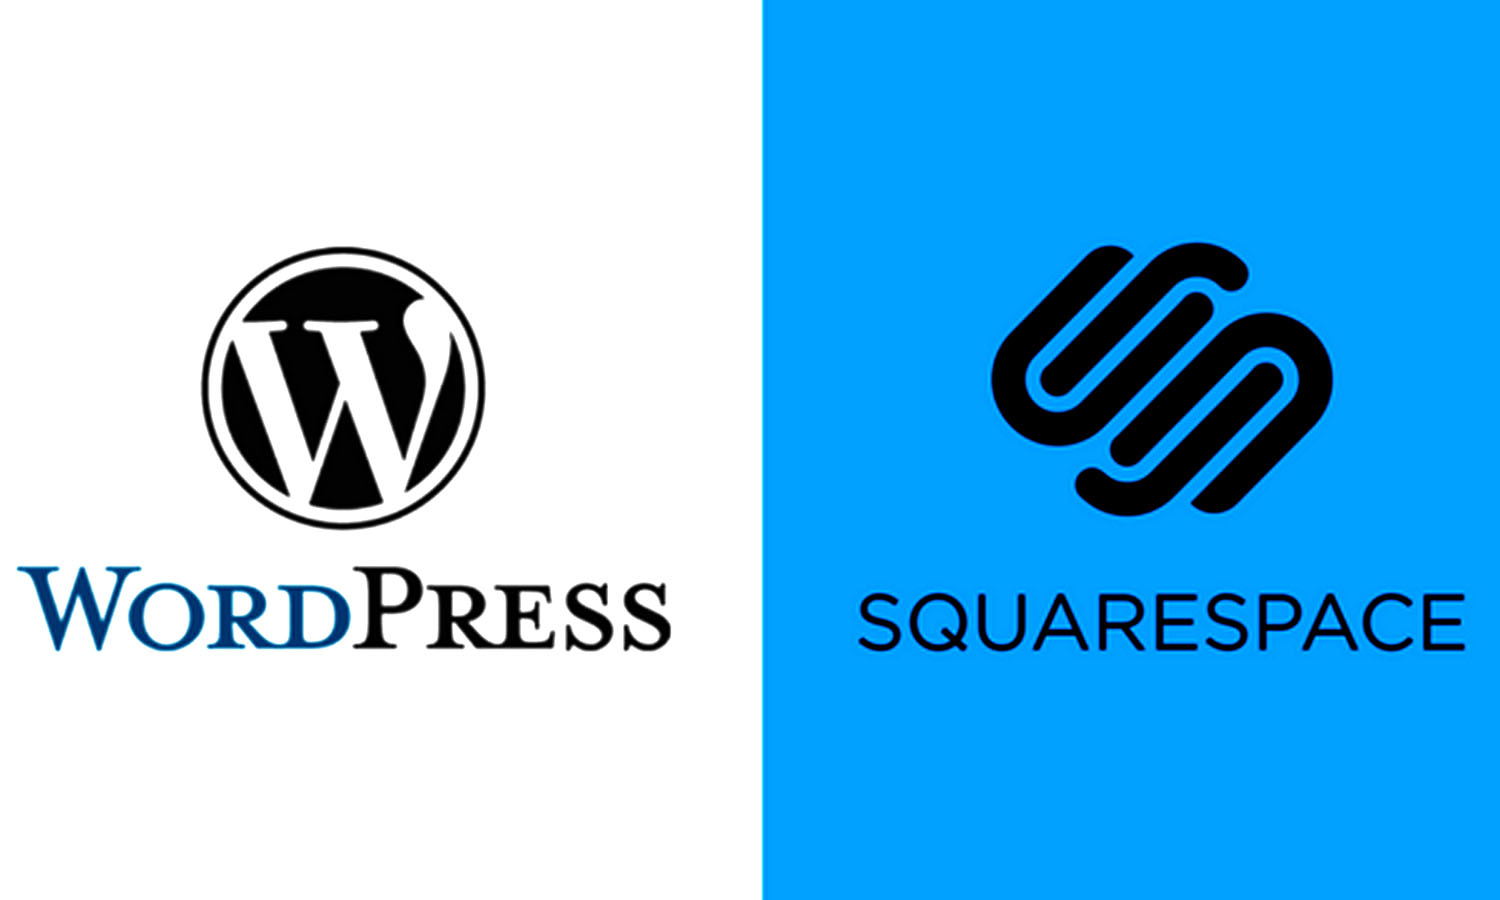 Which Platform Is Better for Your Business - WordPress or SquareSpace?